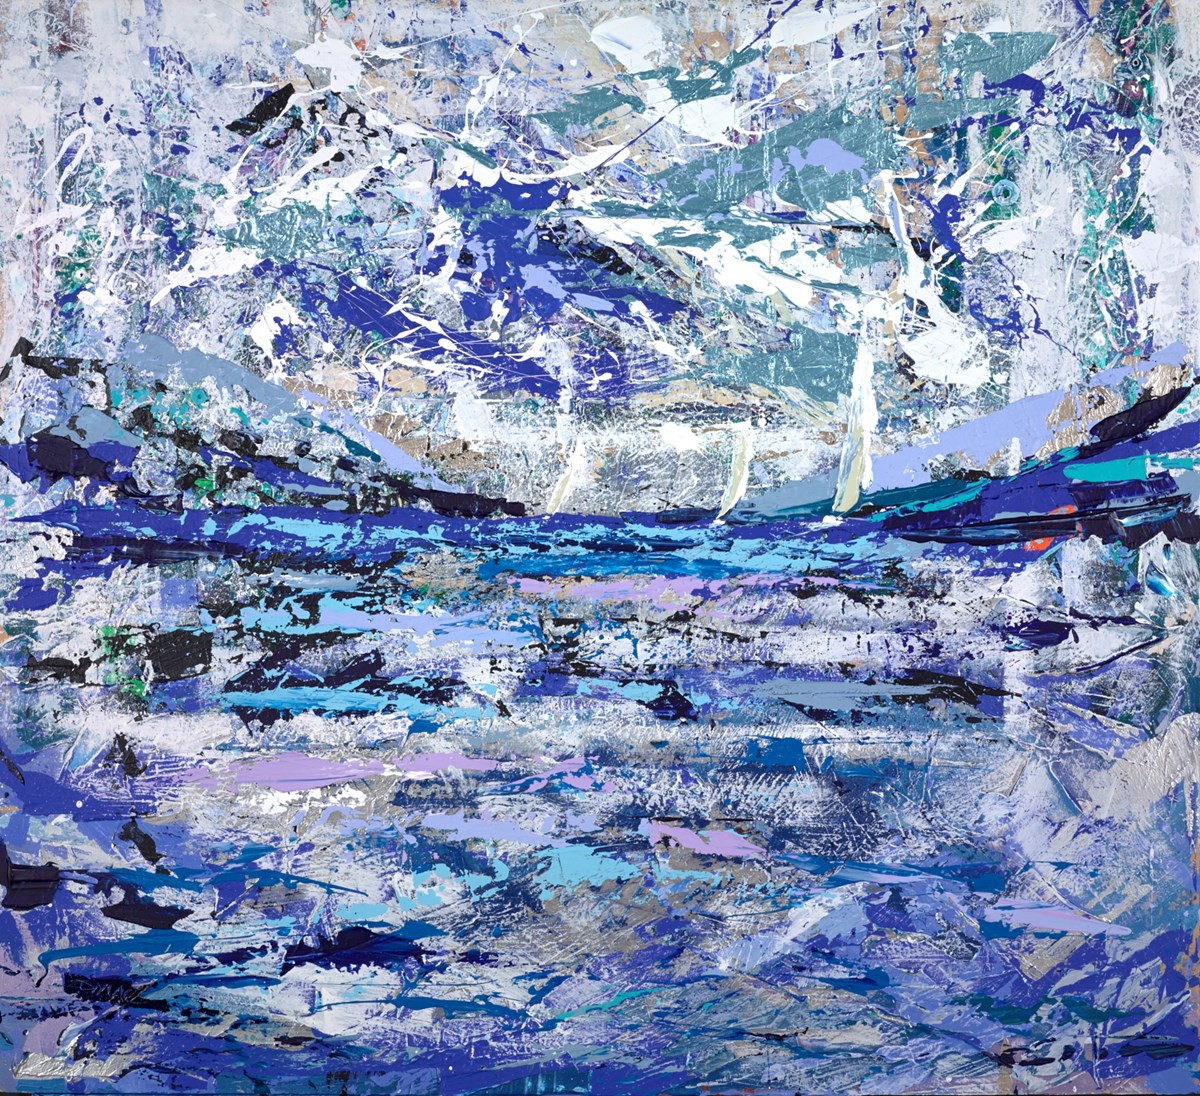 More Weather Arriving by duncan macgregor -  sized 48x44 inches. Available from Whitewall Galleries